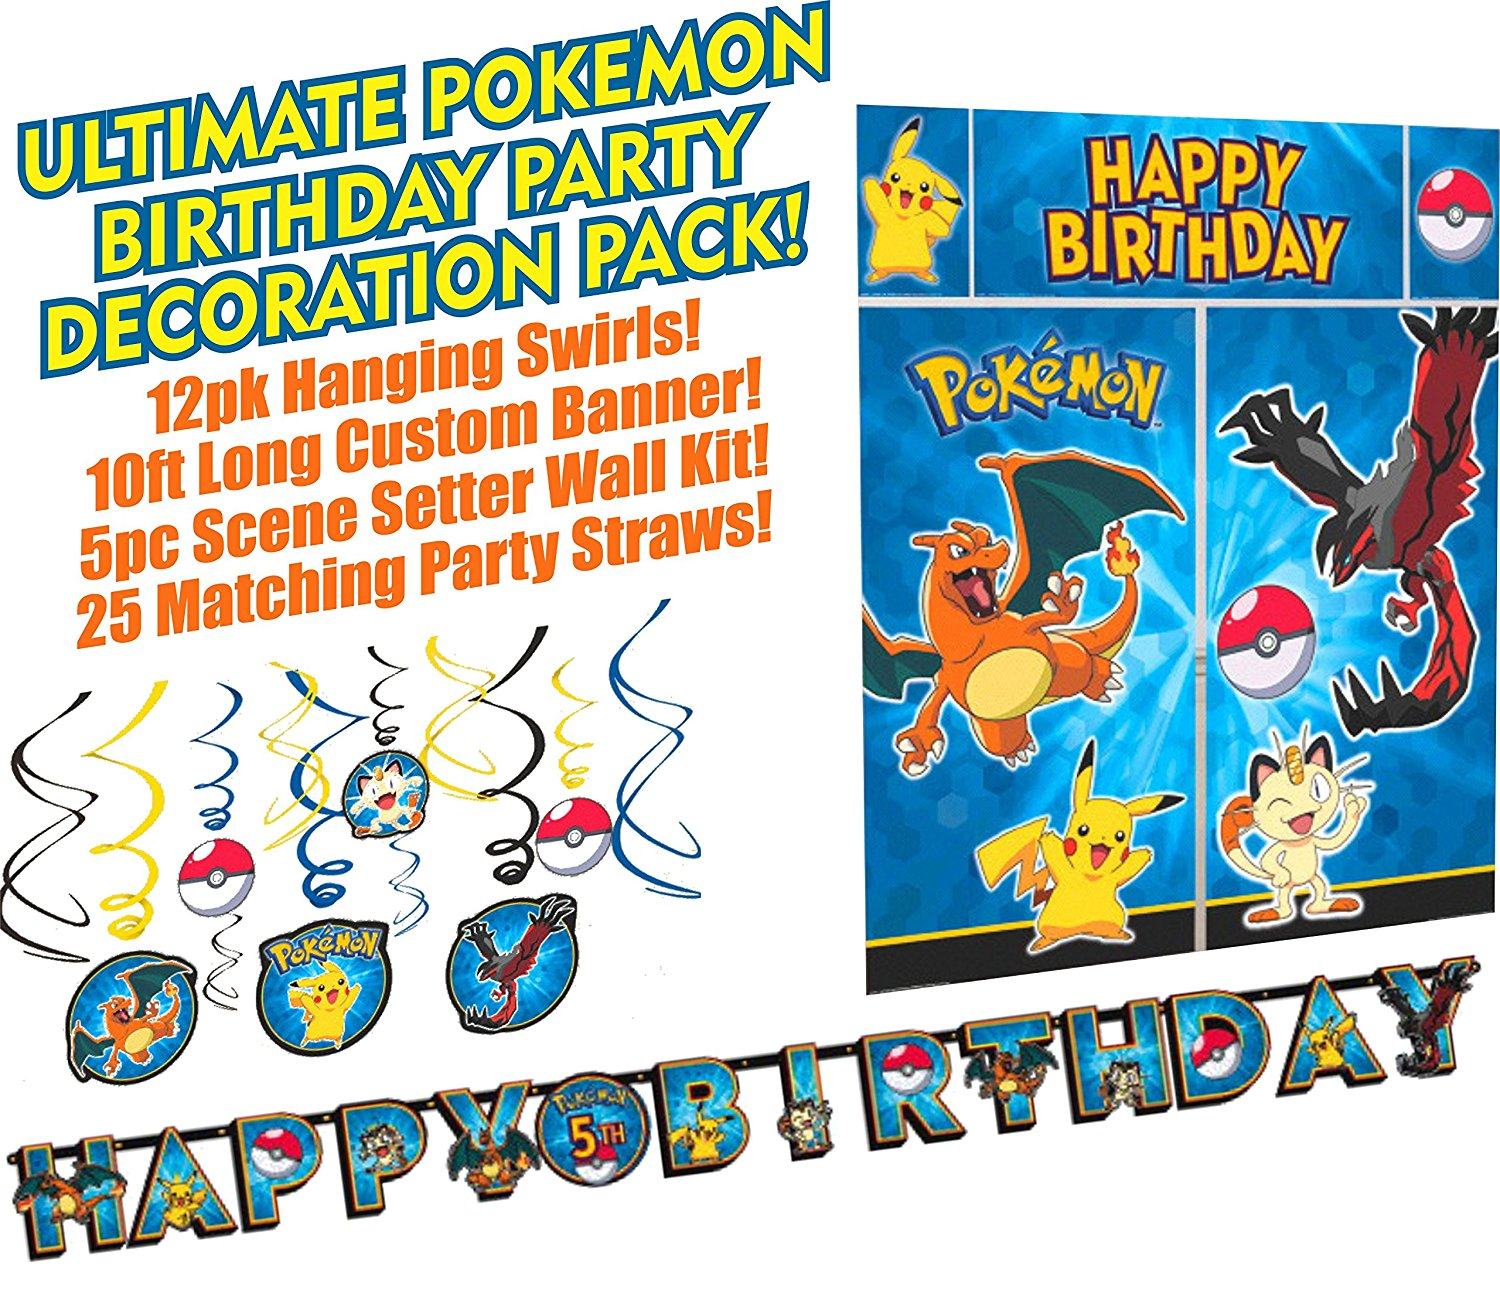 Ultimate Pokemon Birthday Party Decoration Bundle Pack Kit Includes Pikachu & Friends Wall Scene Setter, Custom Birthday Banner, 12 pack Hanging Swirl Kit (Bonus Party Straw Pack Included!!)